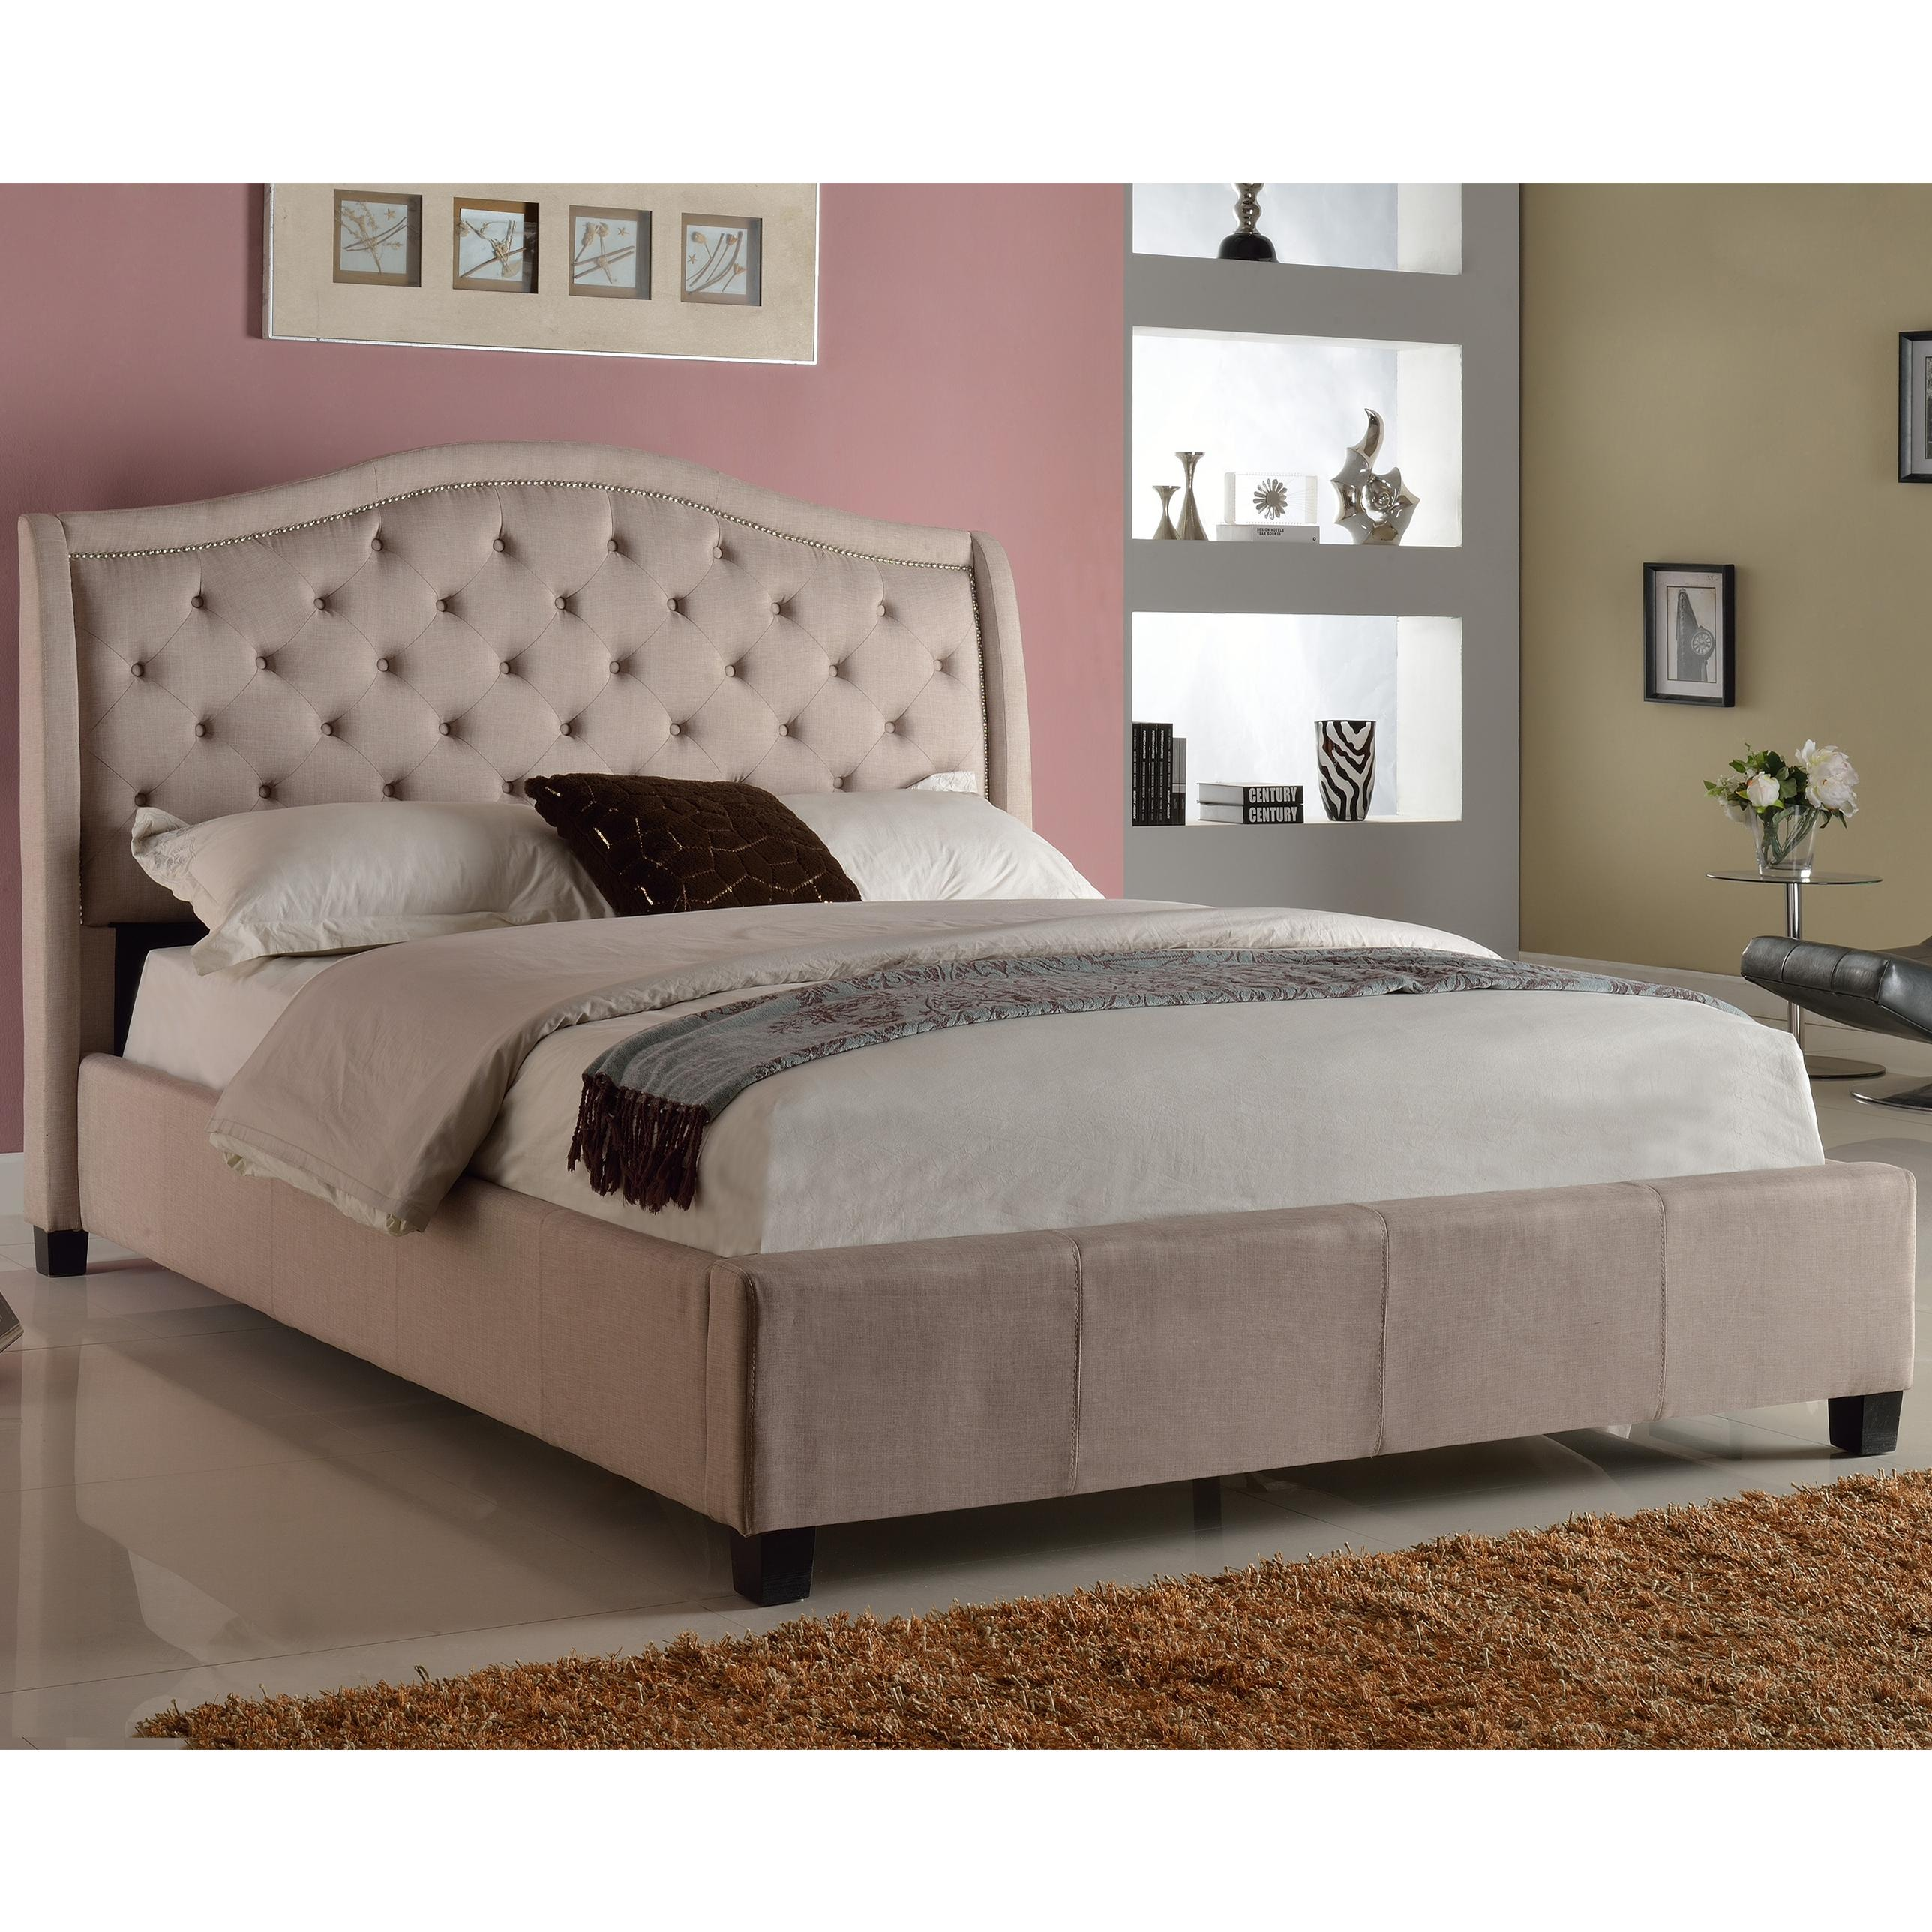 Crown Mark Addison Queen Bed - Item Number: 5262-Q-HB+FBRL